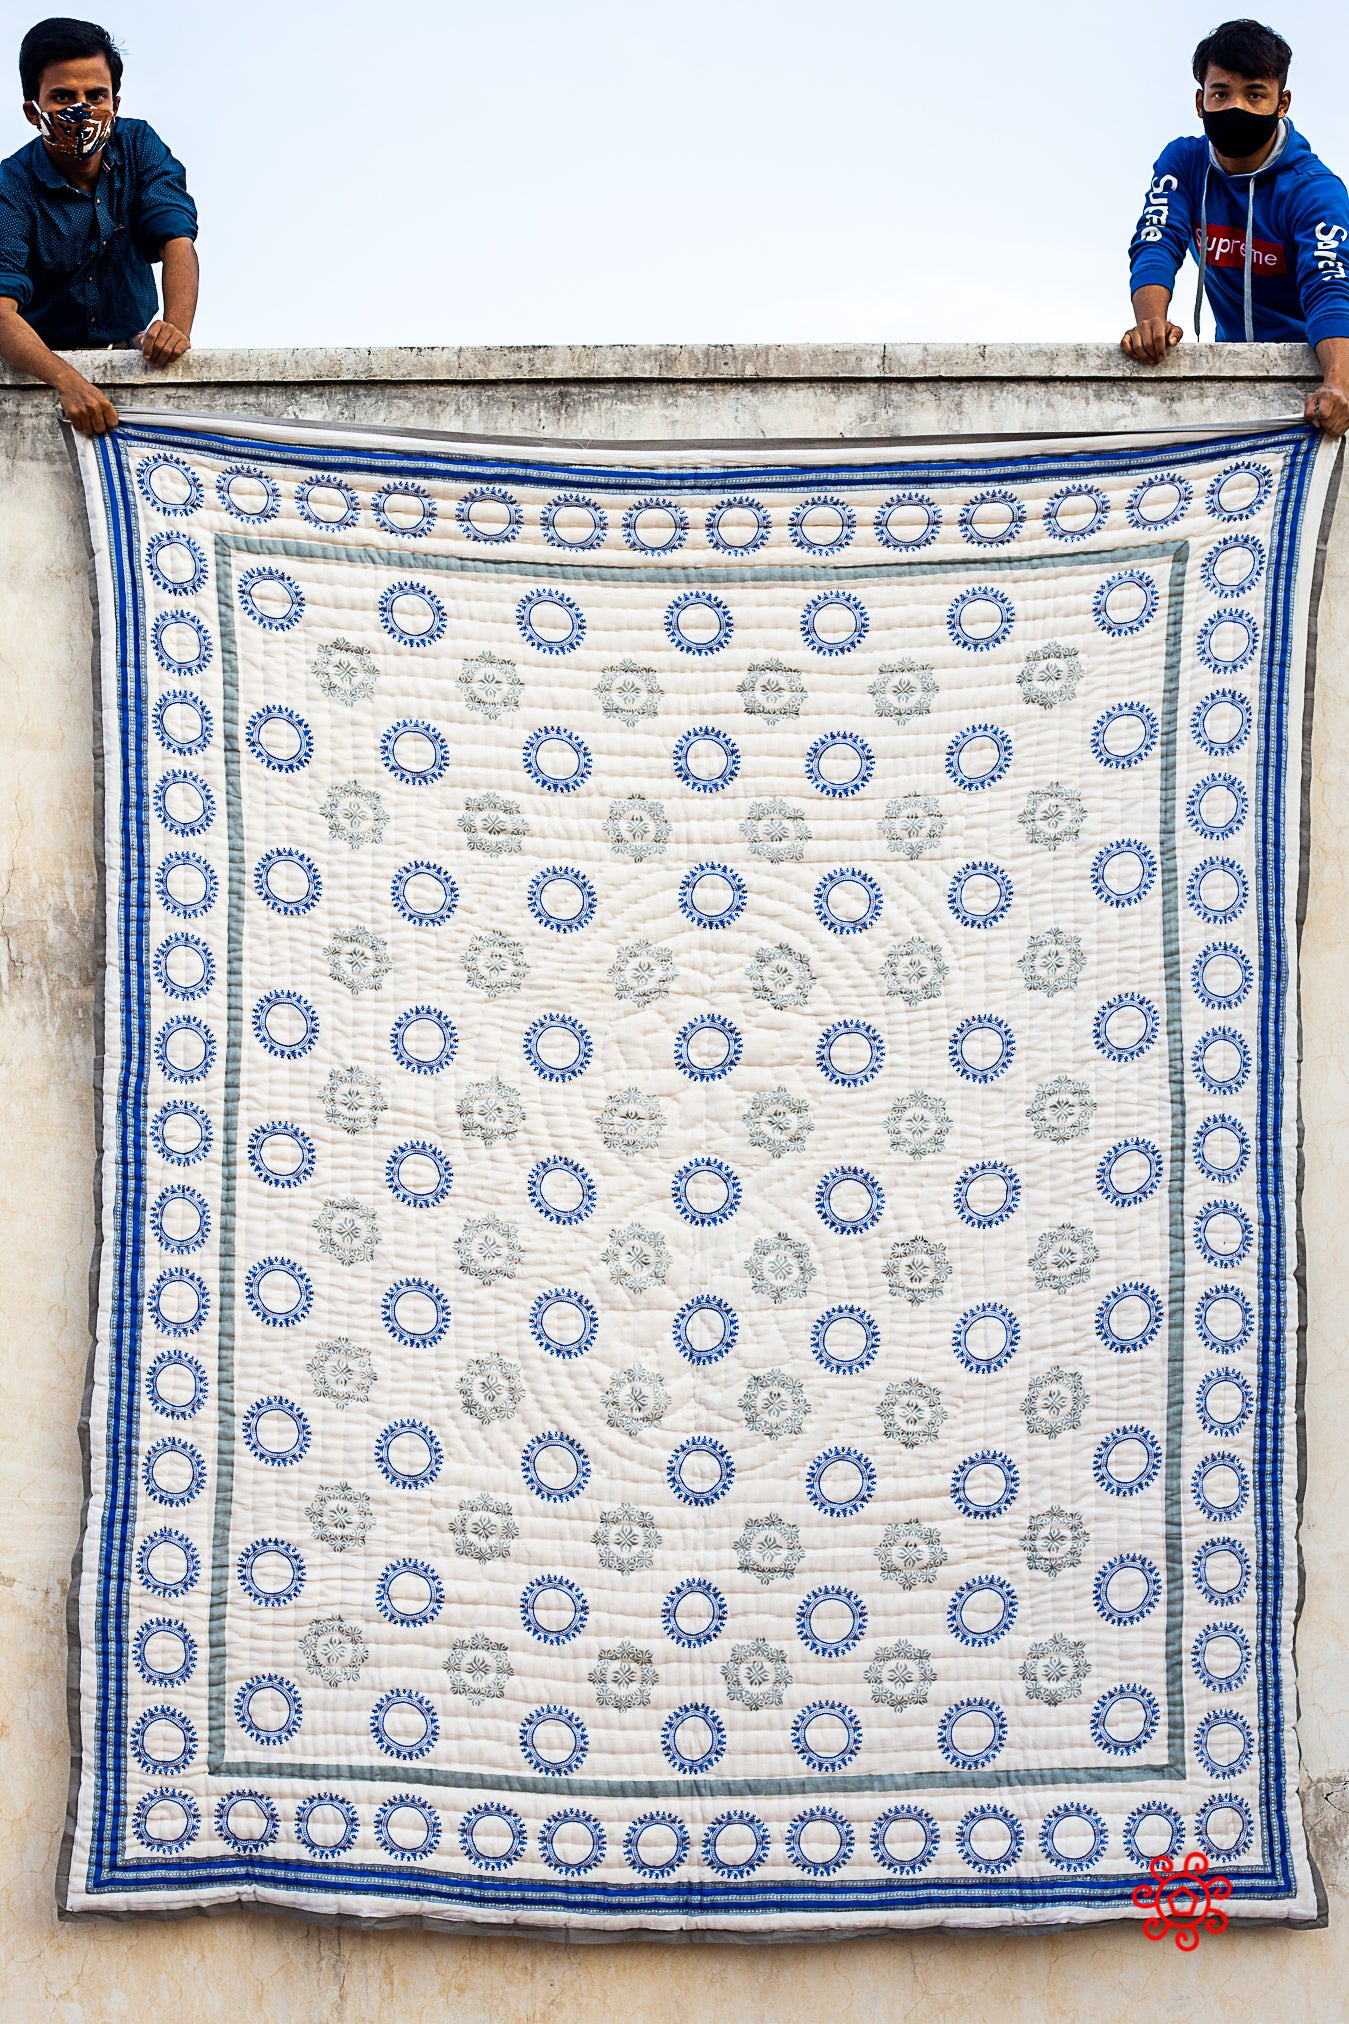 Queen Quilt,100 Percent Handmade, Hand Block printed Quilt, Jaipuri Quilt, Hand Quilted, Natural Cotton filling, Check Gray and Blue QBP 405